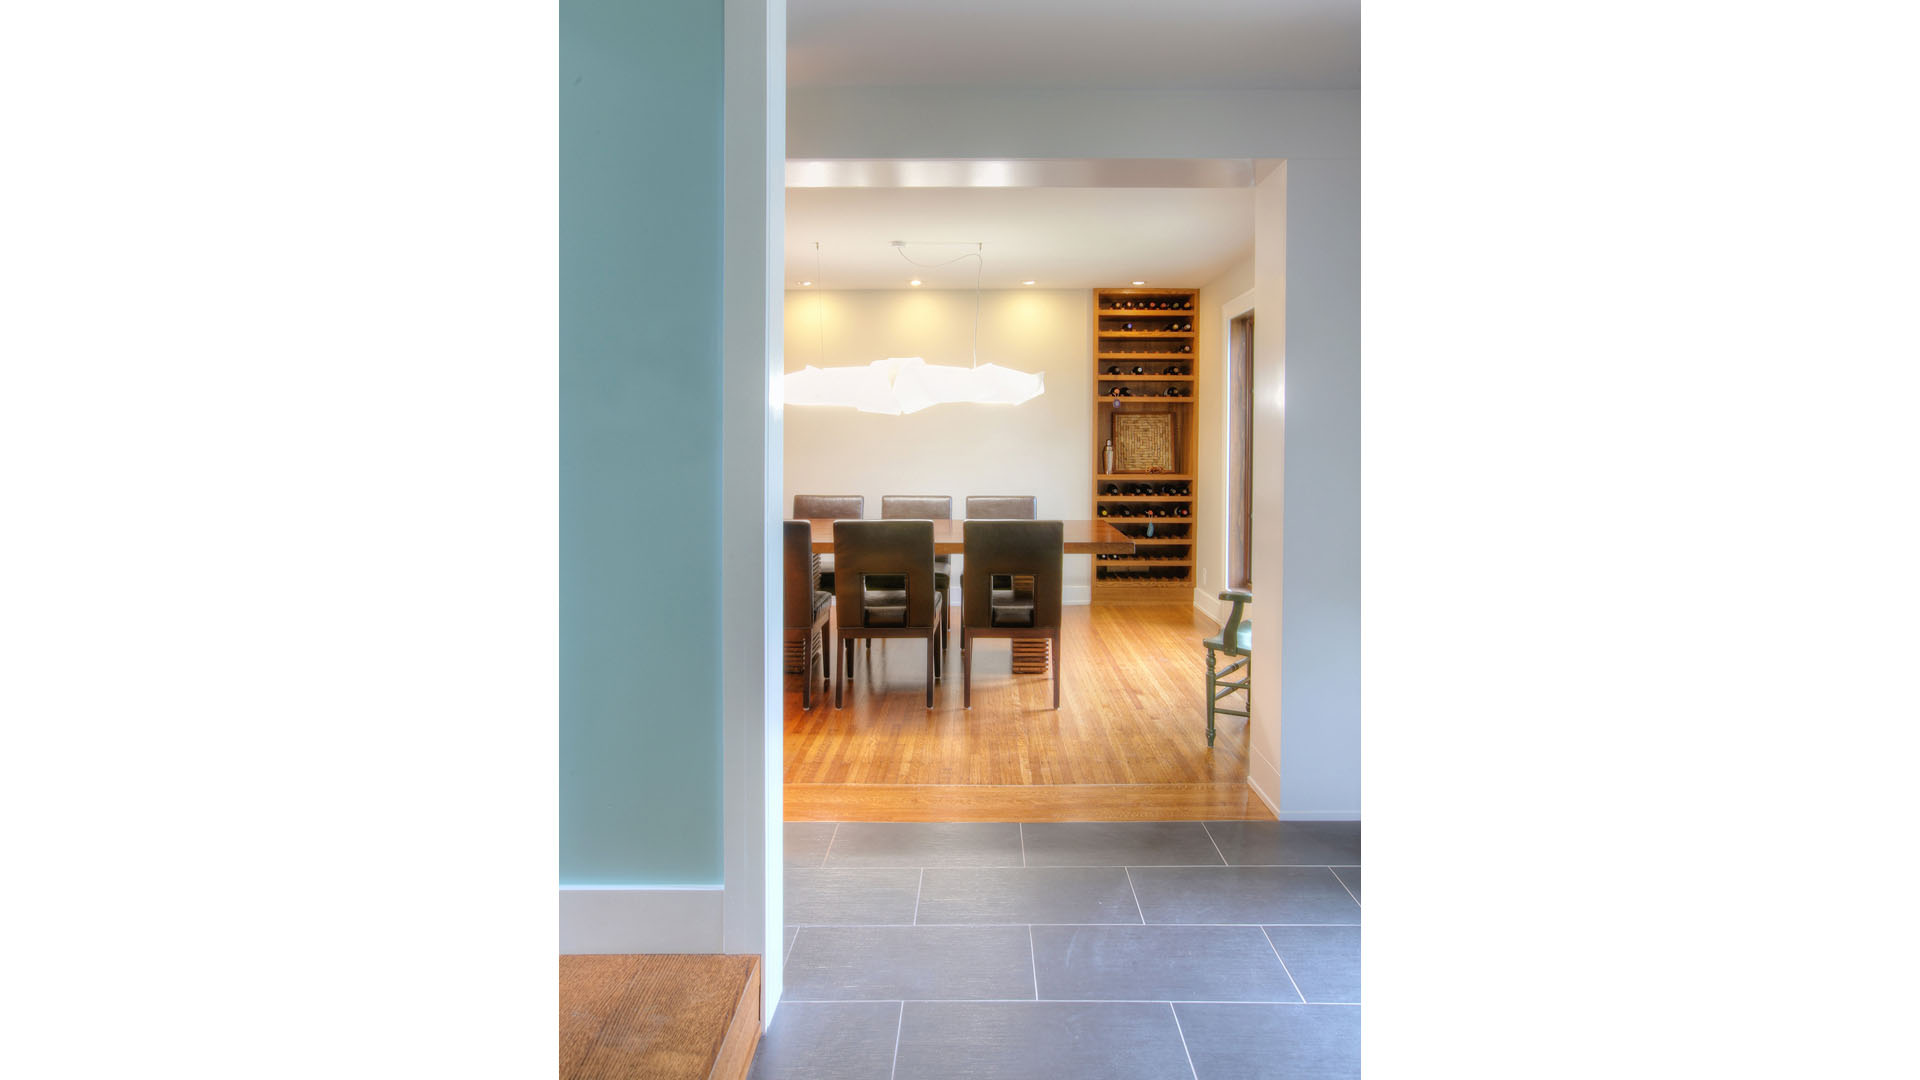 Classic Butler Tarkington Modern Tudor Renovation, Front Entry Foyer with View into Dining Room with Wine Storage Nook and Modern Pendant Light Aqua Blue Walls, HAUS Architecture, WERK Building Modern, Christopher Short, Indianapolis Architect